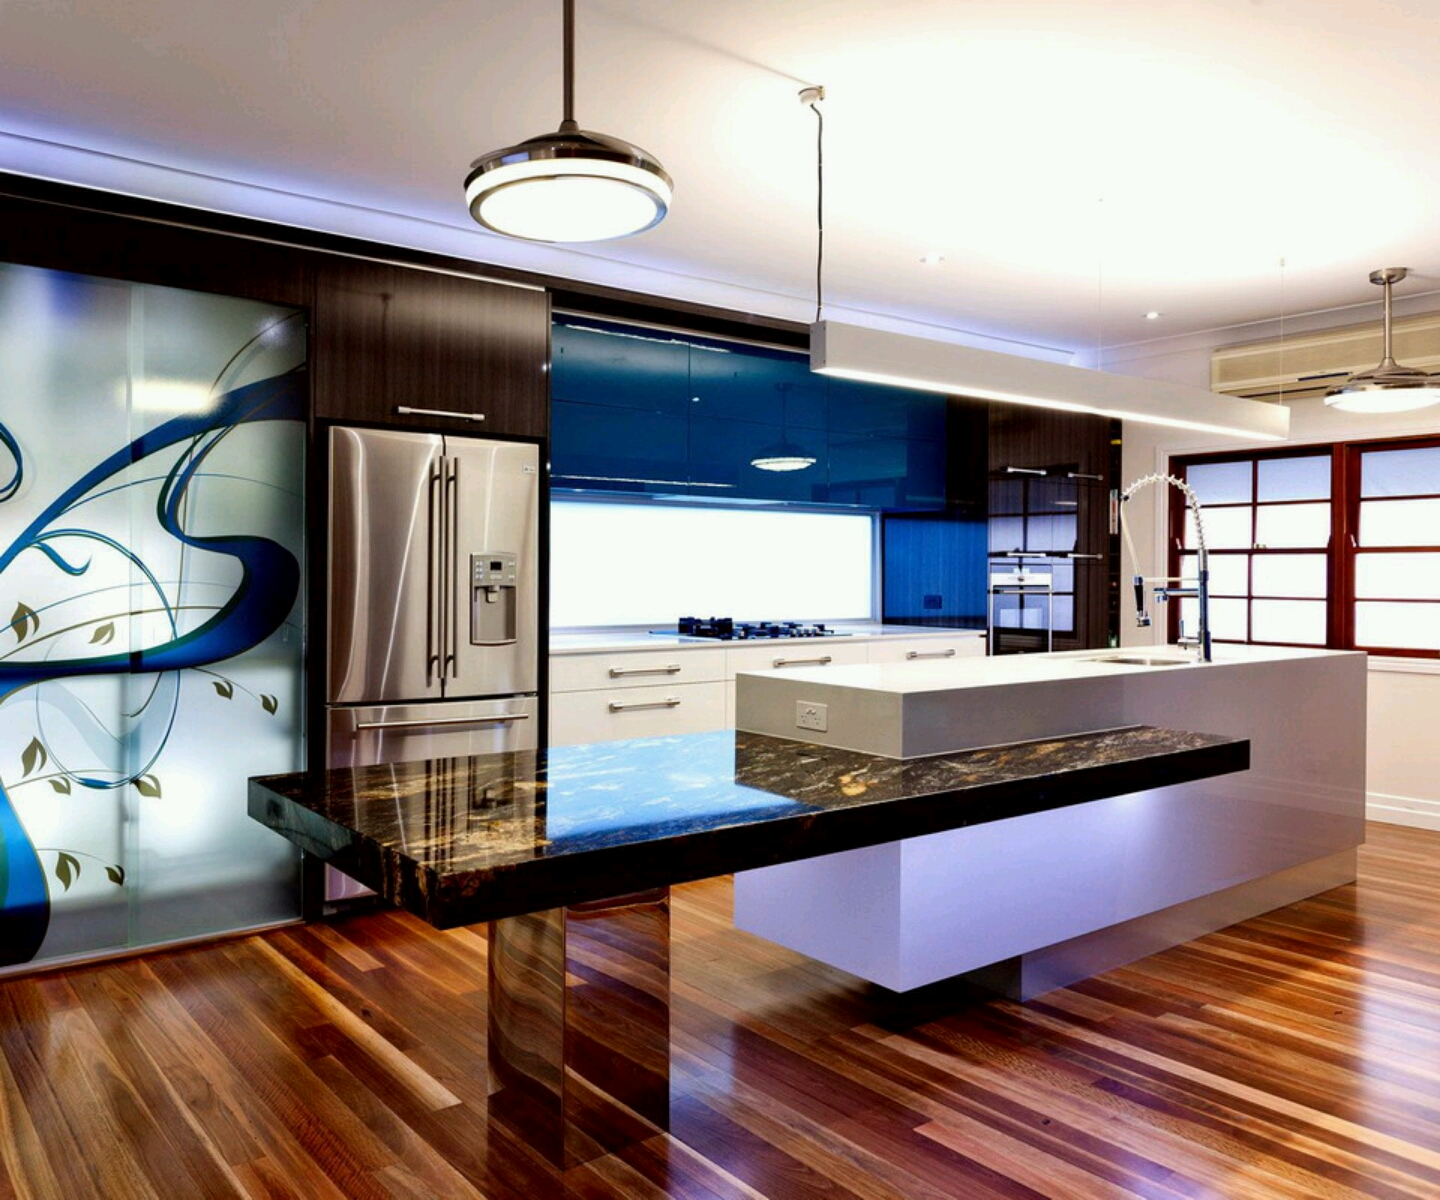 New home designs latest.: Ultra modern kitchen designs ideas. on Modern Kitchen Design  id=56853